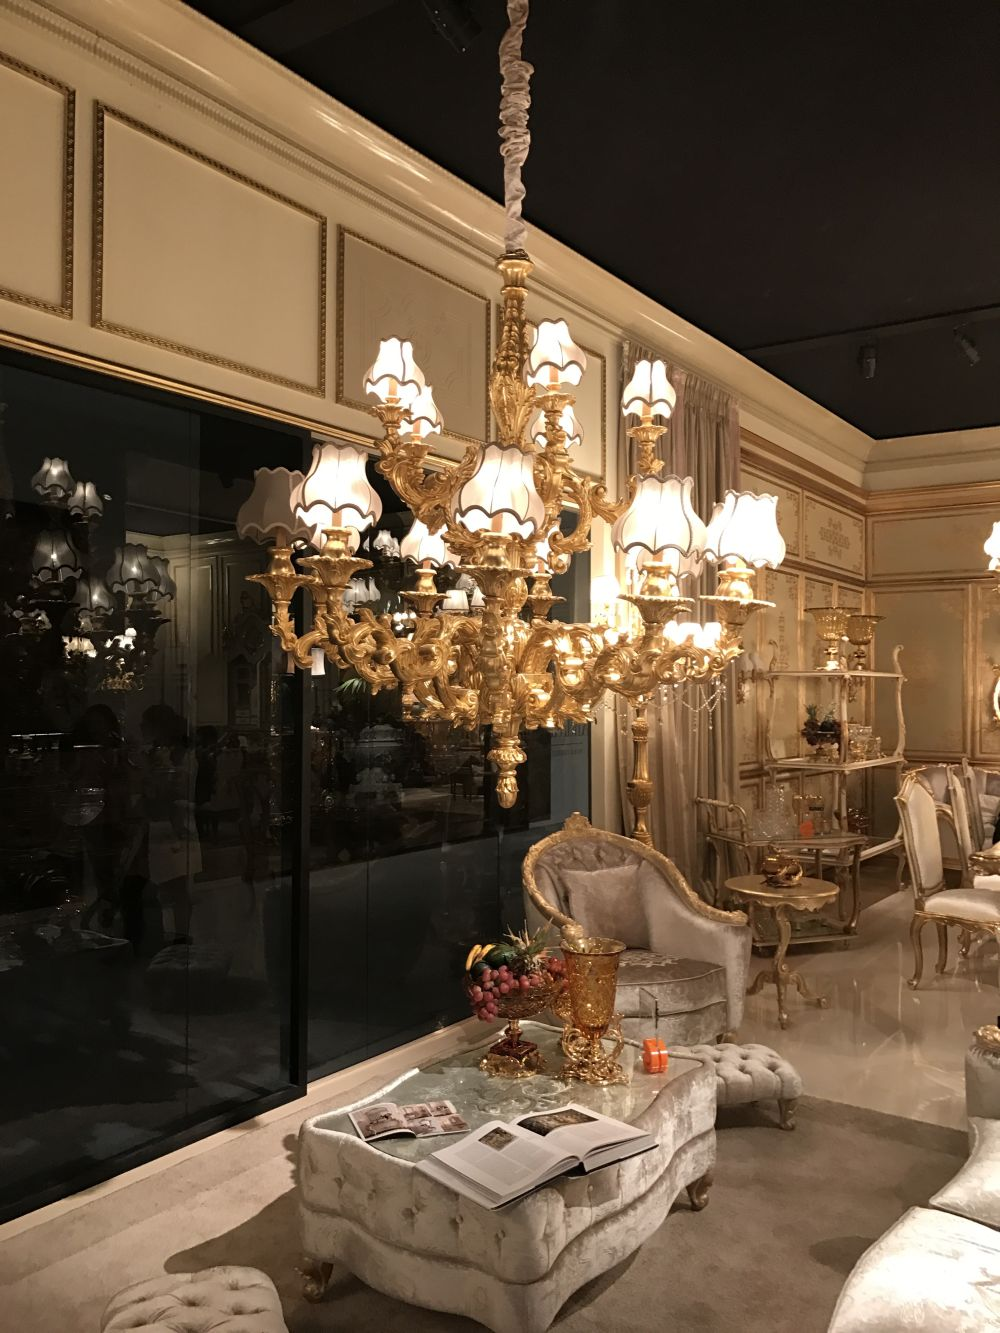 Plentiful gold and darker shades of ivory are typically Baroque style.